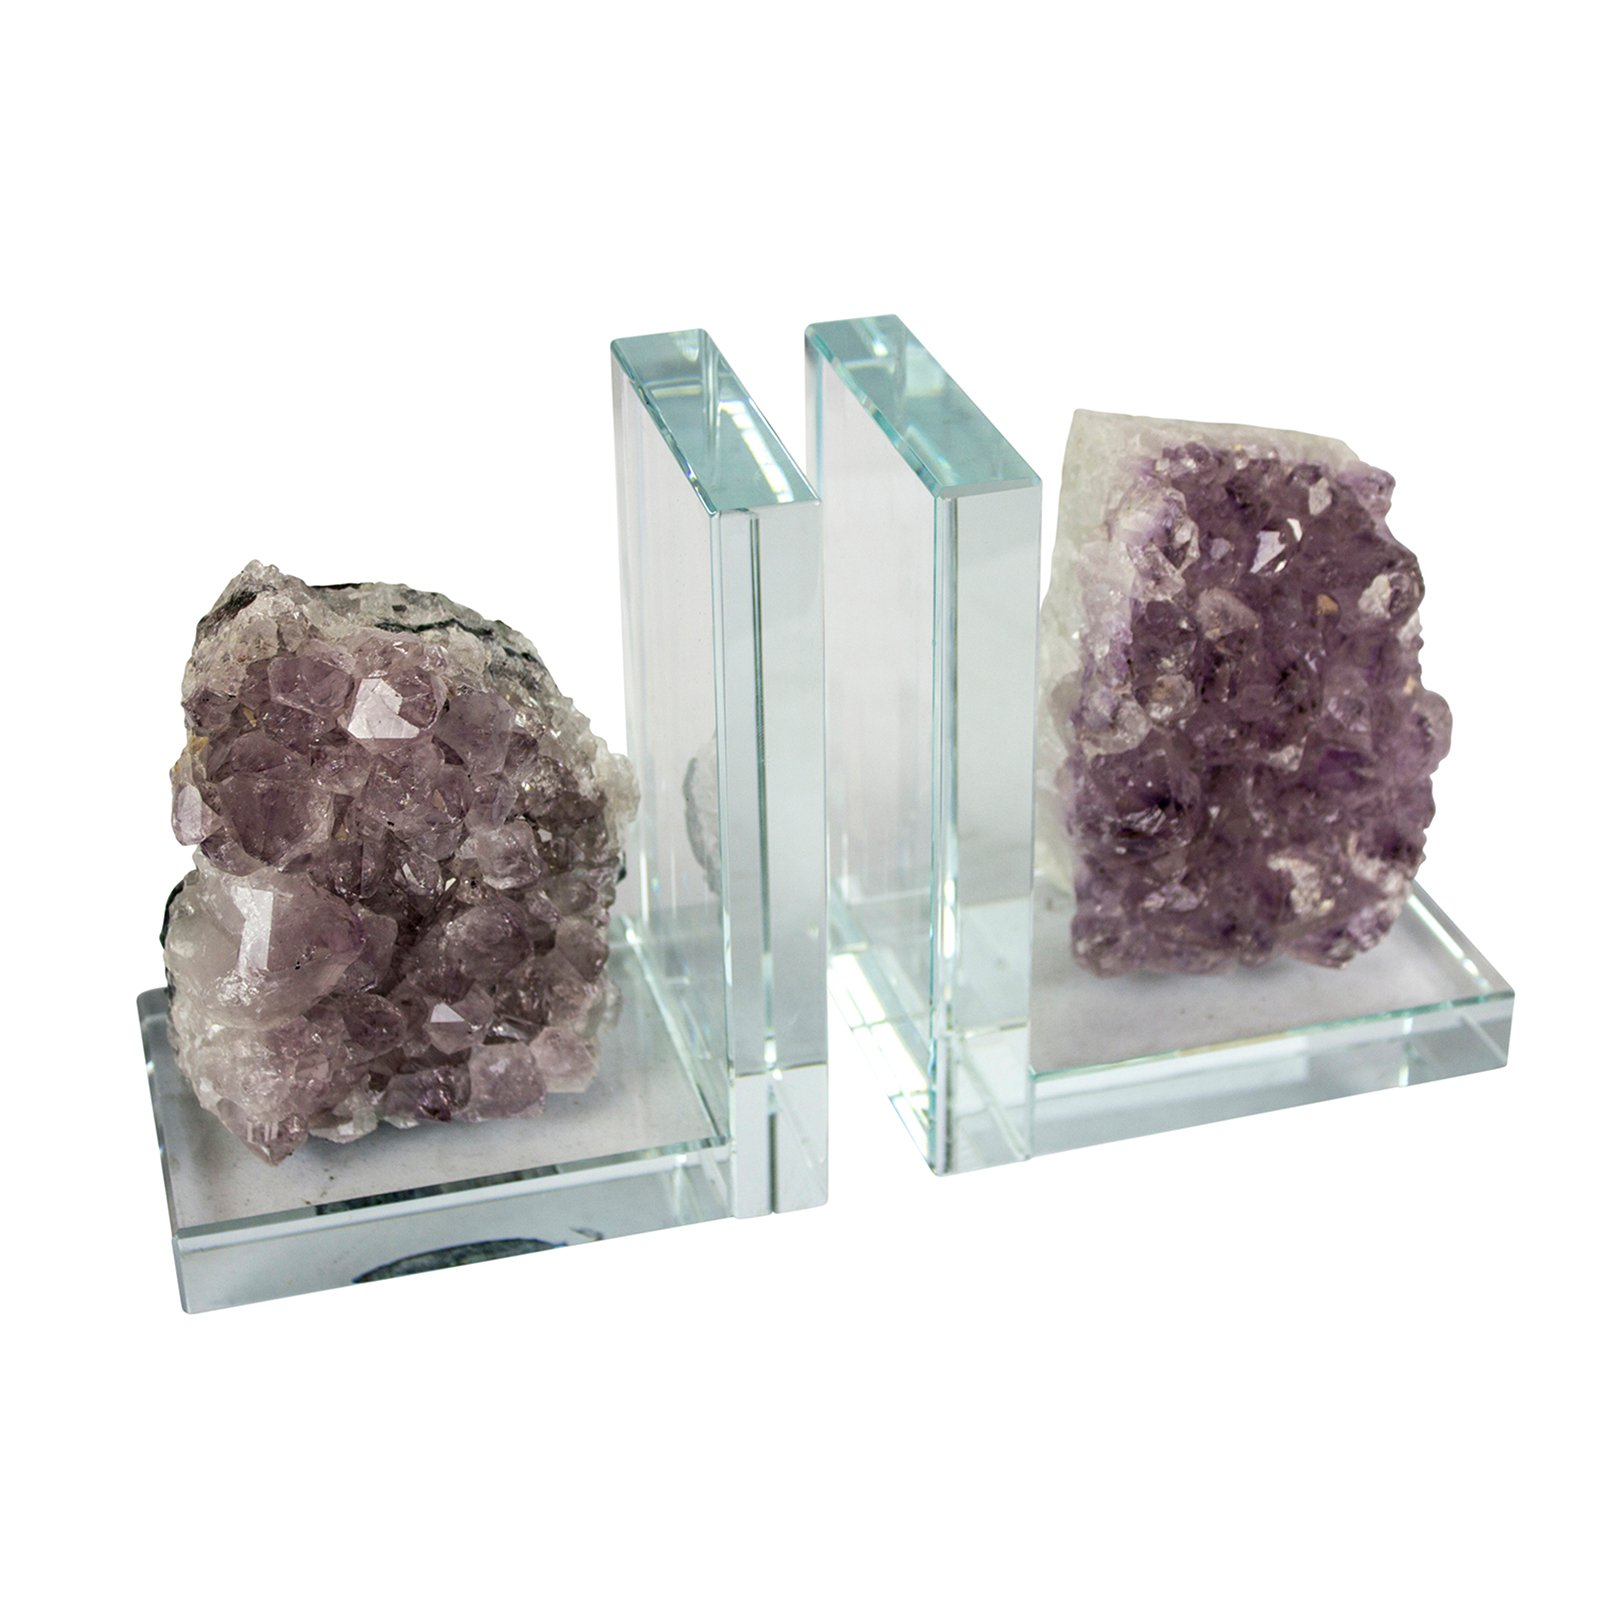 SageBrook Home Amethyst and Glass Bookend - Set of 2